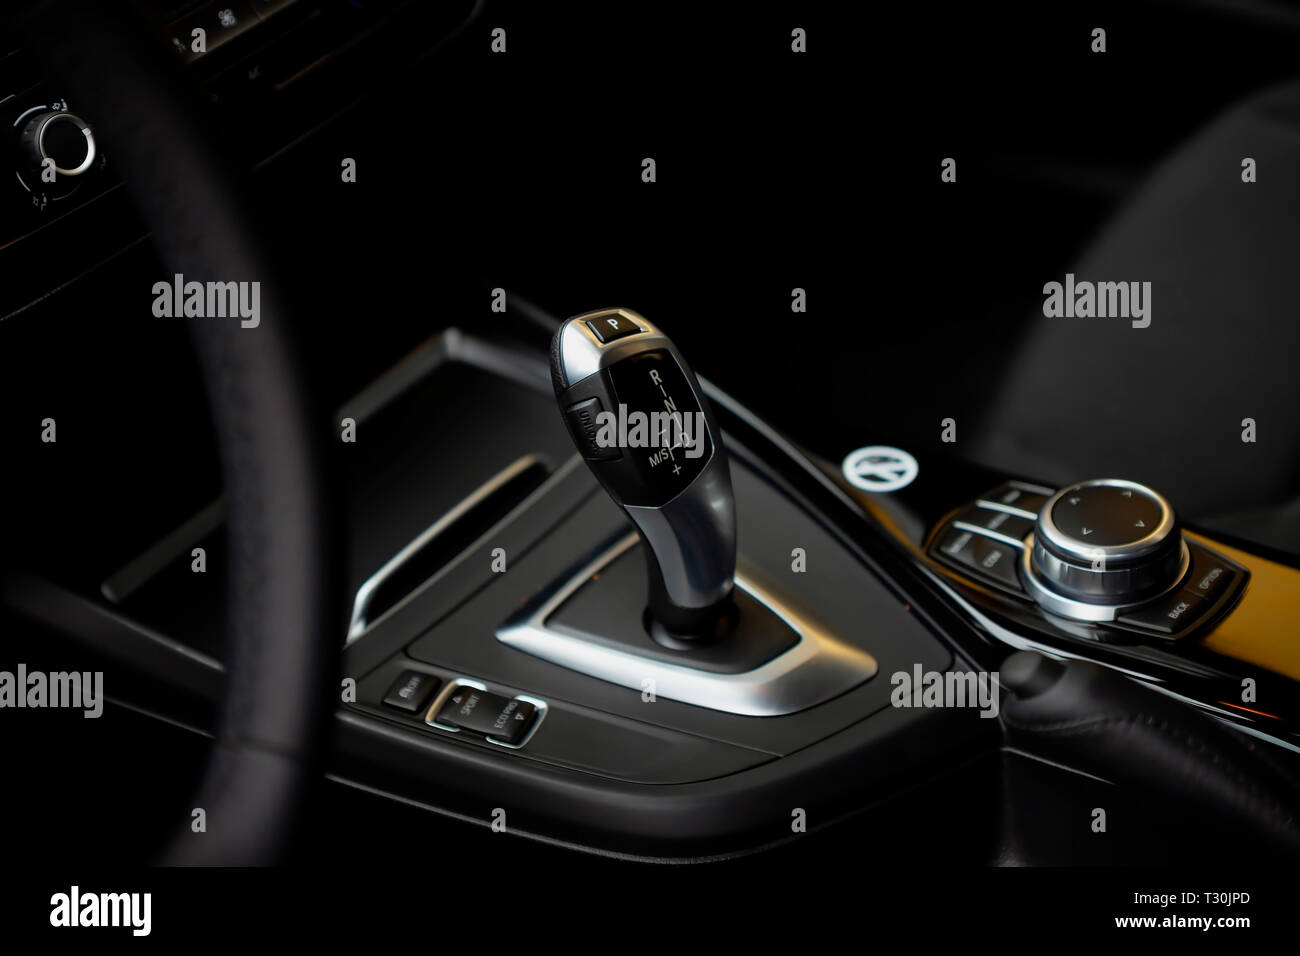 Detail of the gear lever of the new BMW 118i of the 1 series. Image taken on April 4, 2019 in Madrid, Spain. - Stock Image